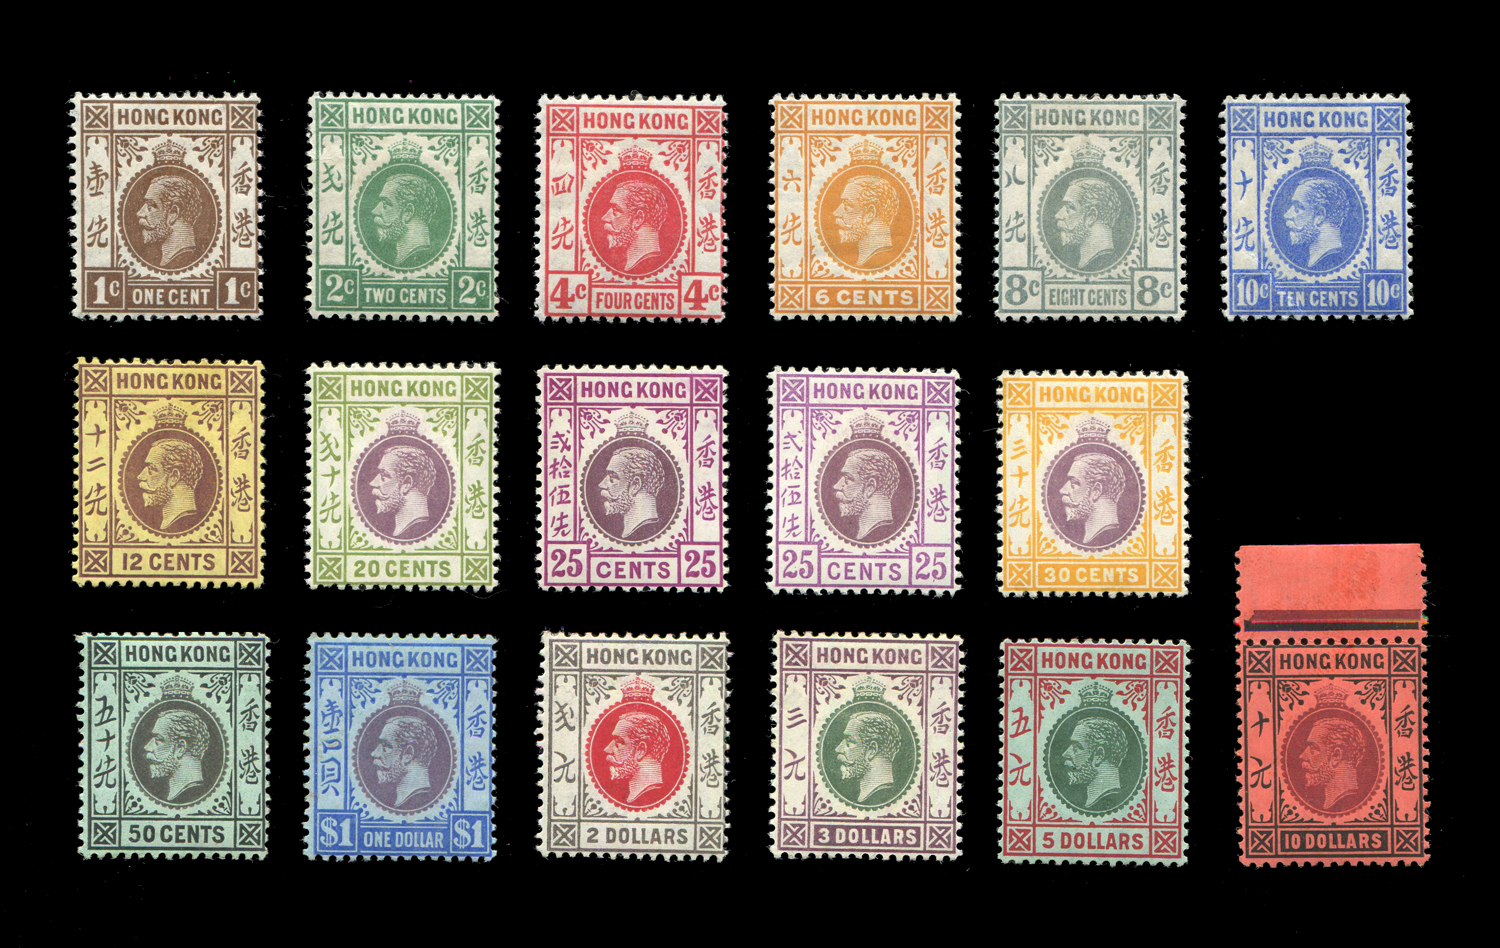 Lot 3014 - A Hong Kong 1912-21 1c to $10 fine mint set of 17 stamps, with both types A and B of 25 cent, $10 is